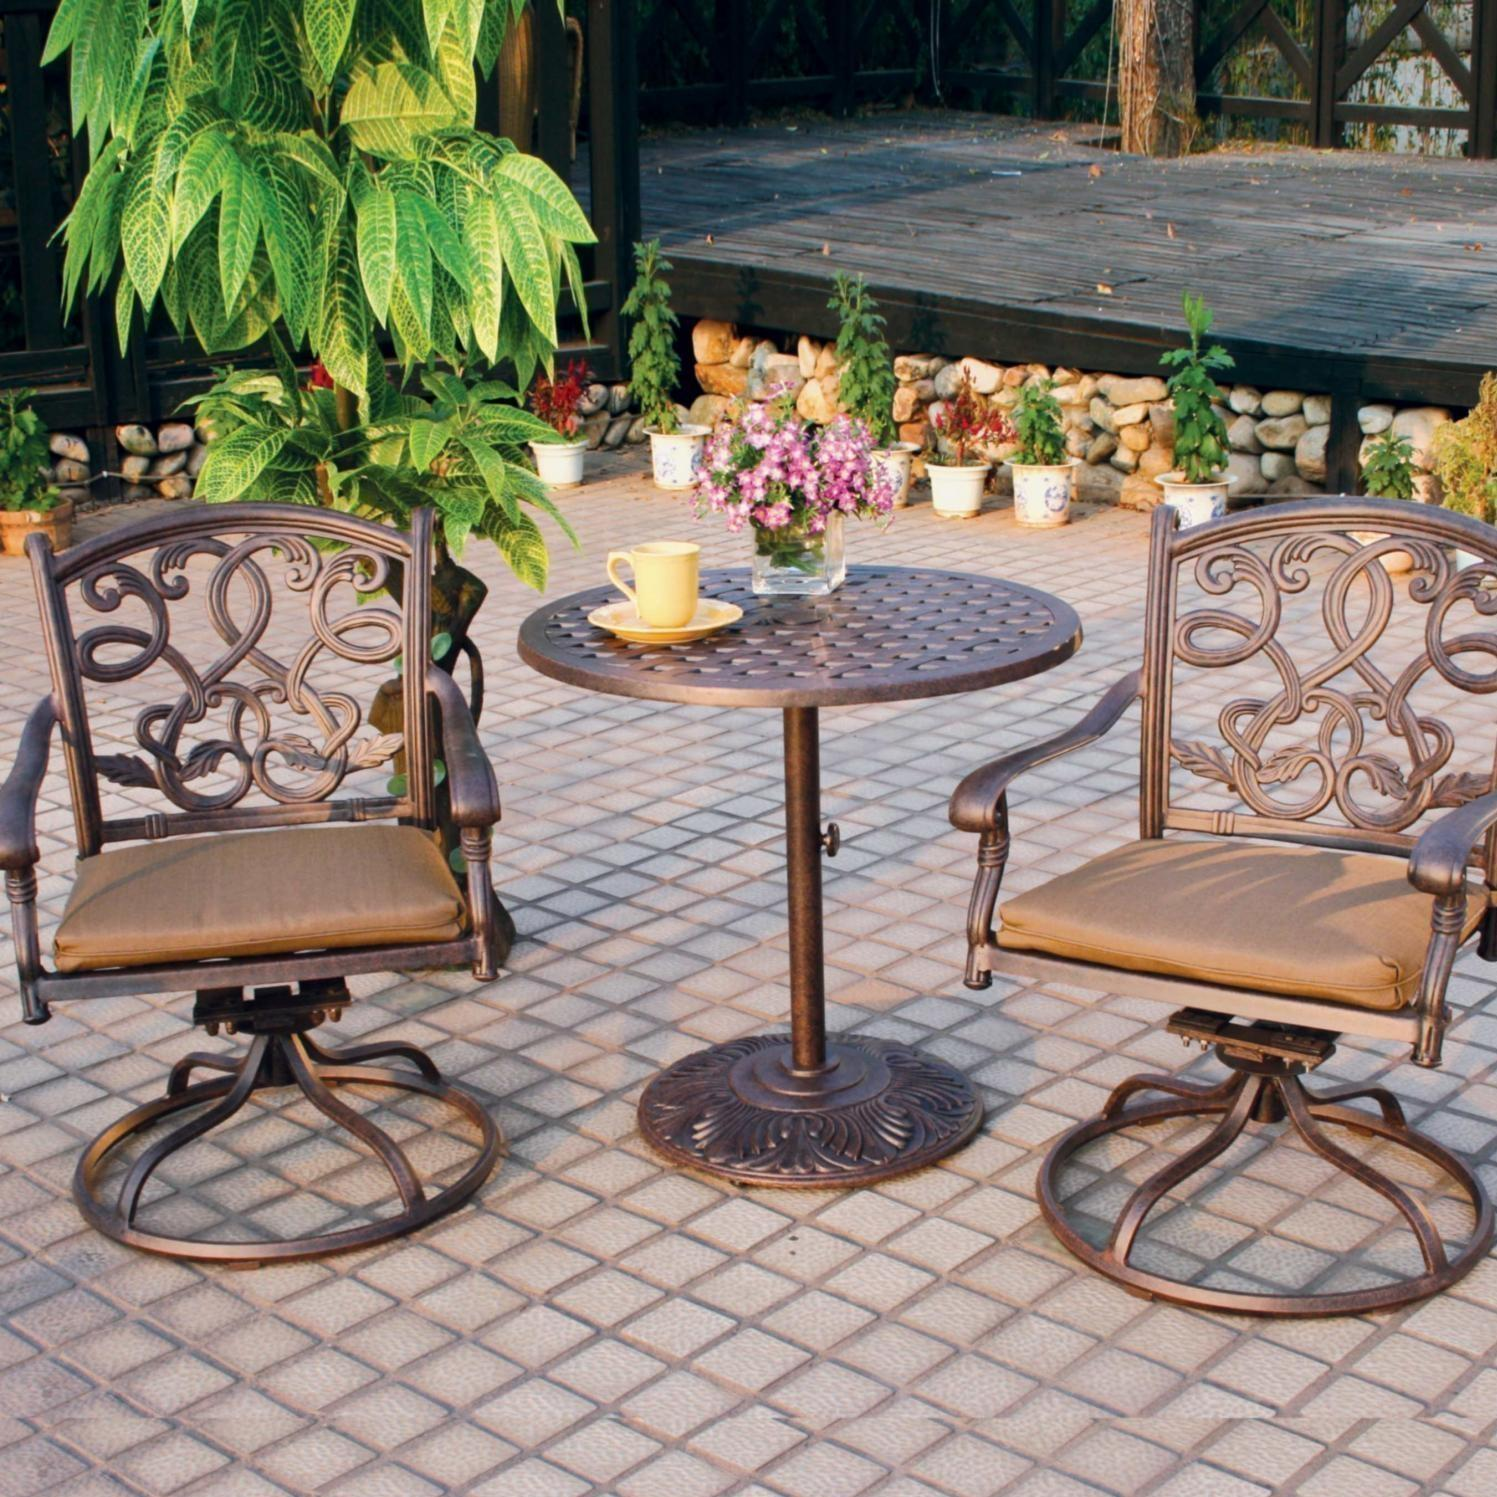 Darlee Bistro Sets  Shop Now At The Outdoor Store. Slate Patio Diy. Decorating Patio Umbrellas. Patio Deck Extension. Outdoor Patio Rugs Lowes. Patio Restaurant Cleveland. Gravel Patio Under Deck. Patio Builders Clarksville Tn. Patio Deck Installation Cost